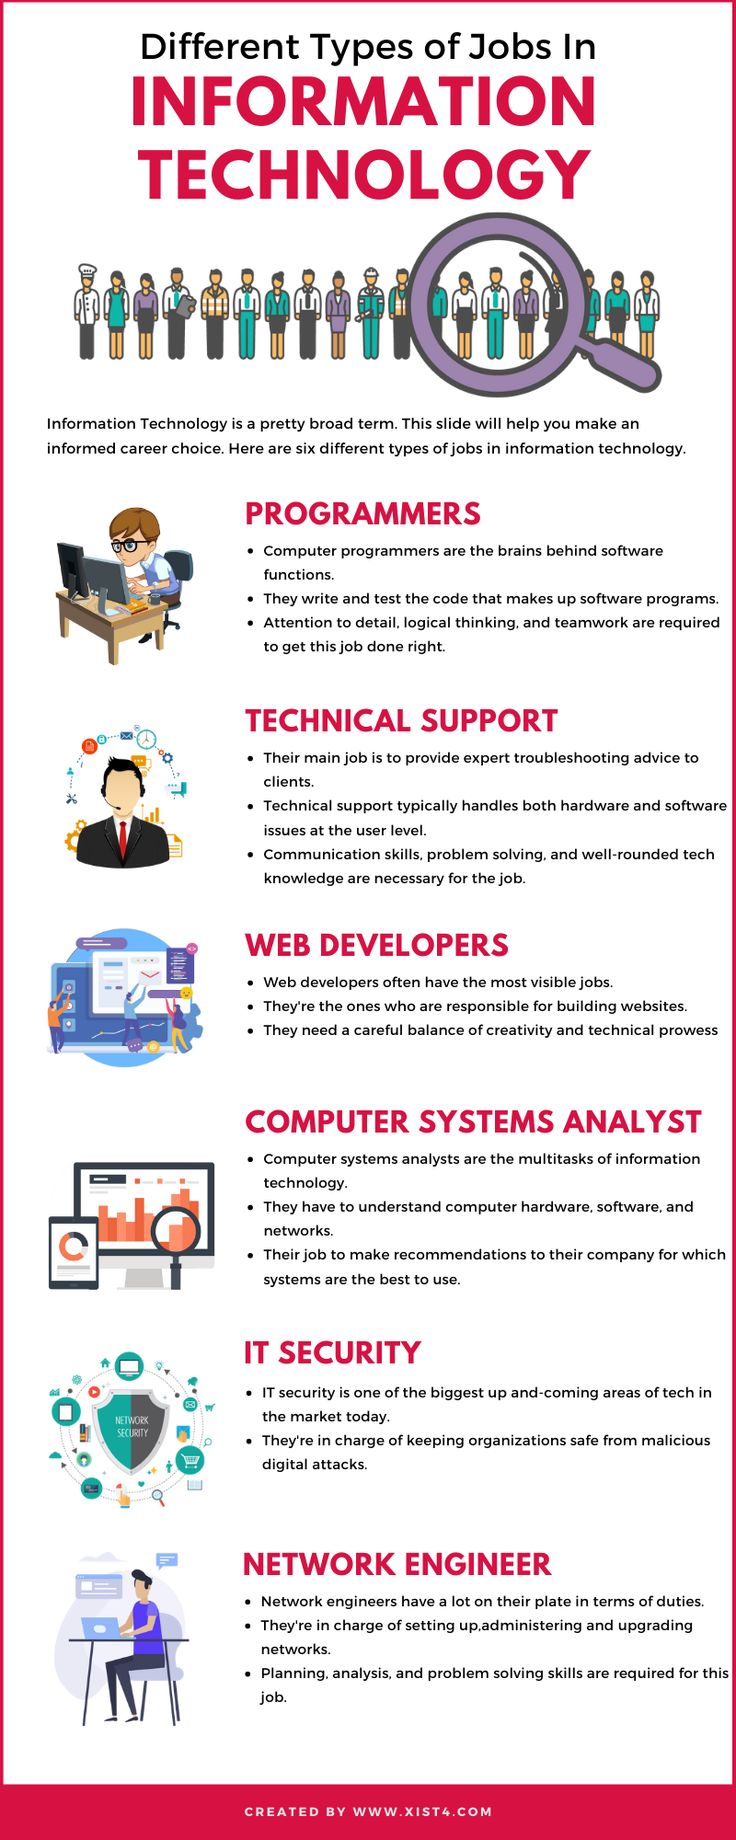 Different Types of Jobs In Information Technology